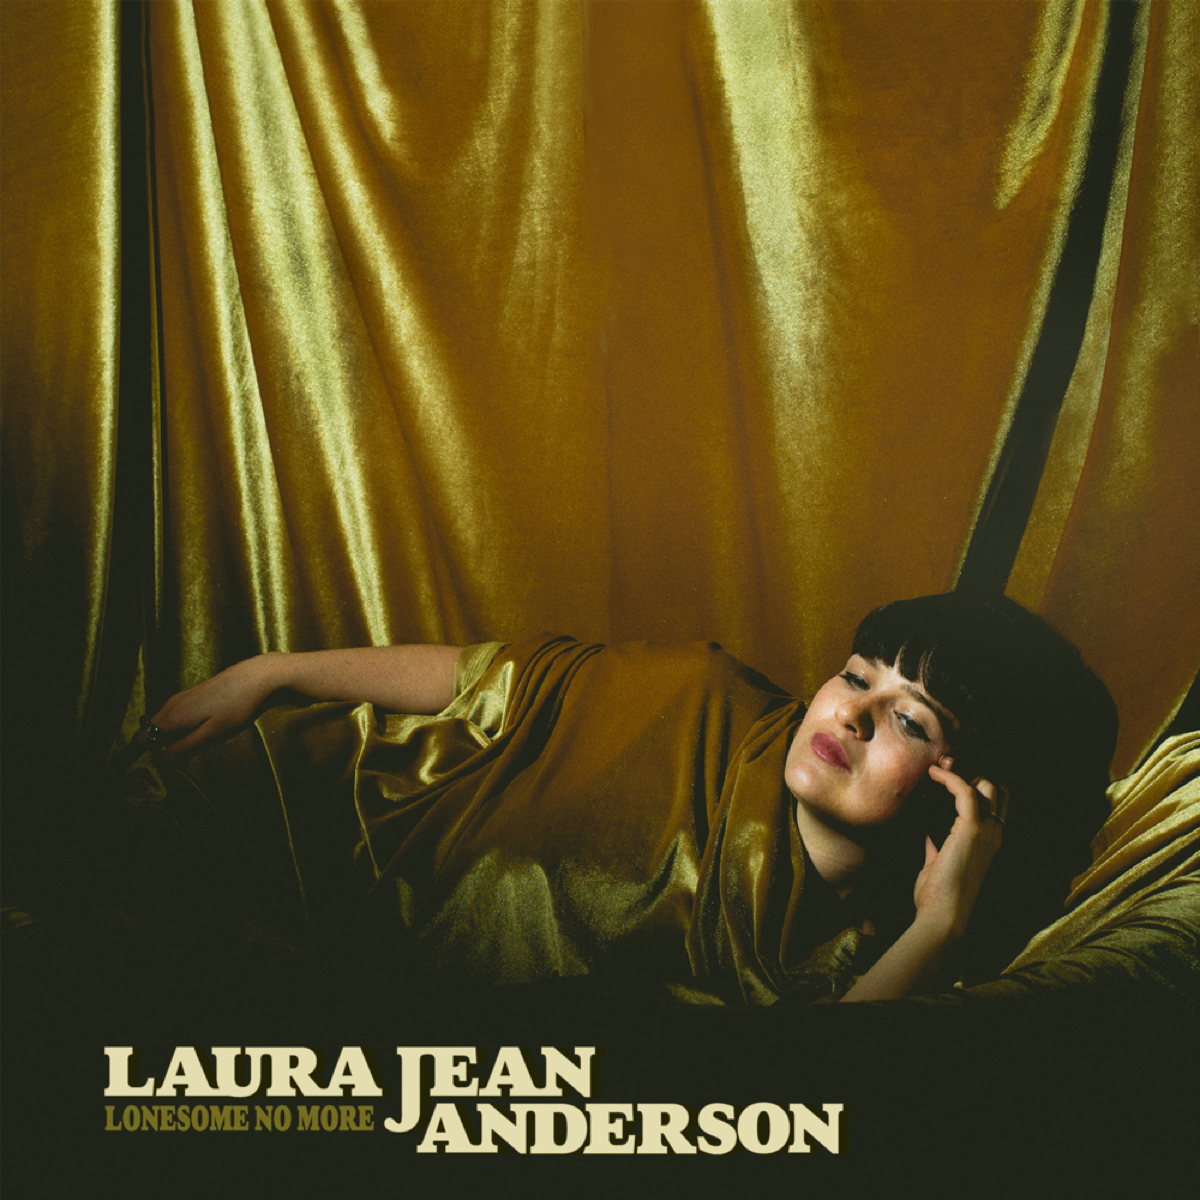 Laura Jean Anderson Lonesome No More EP